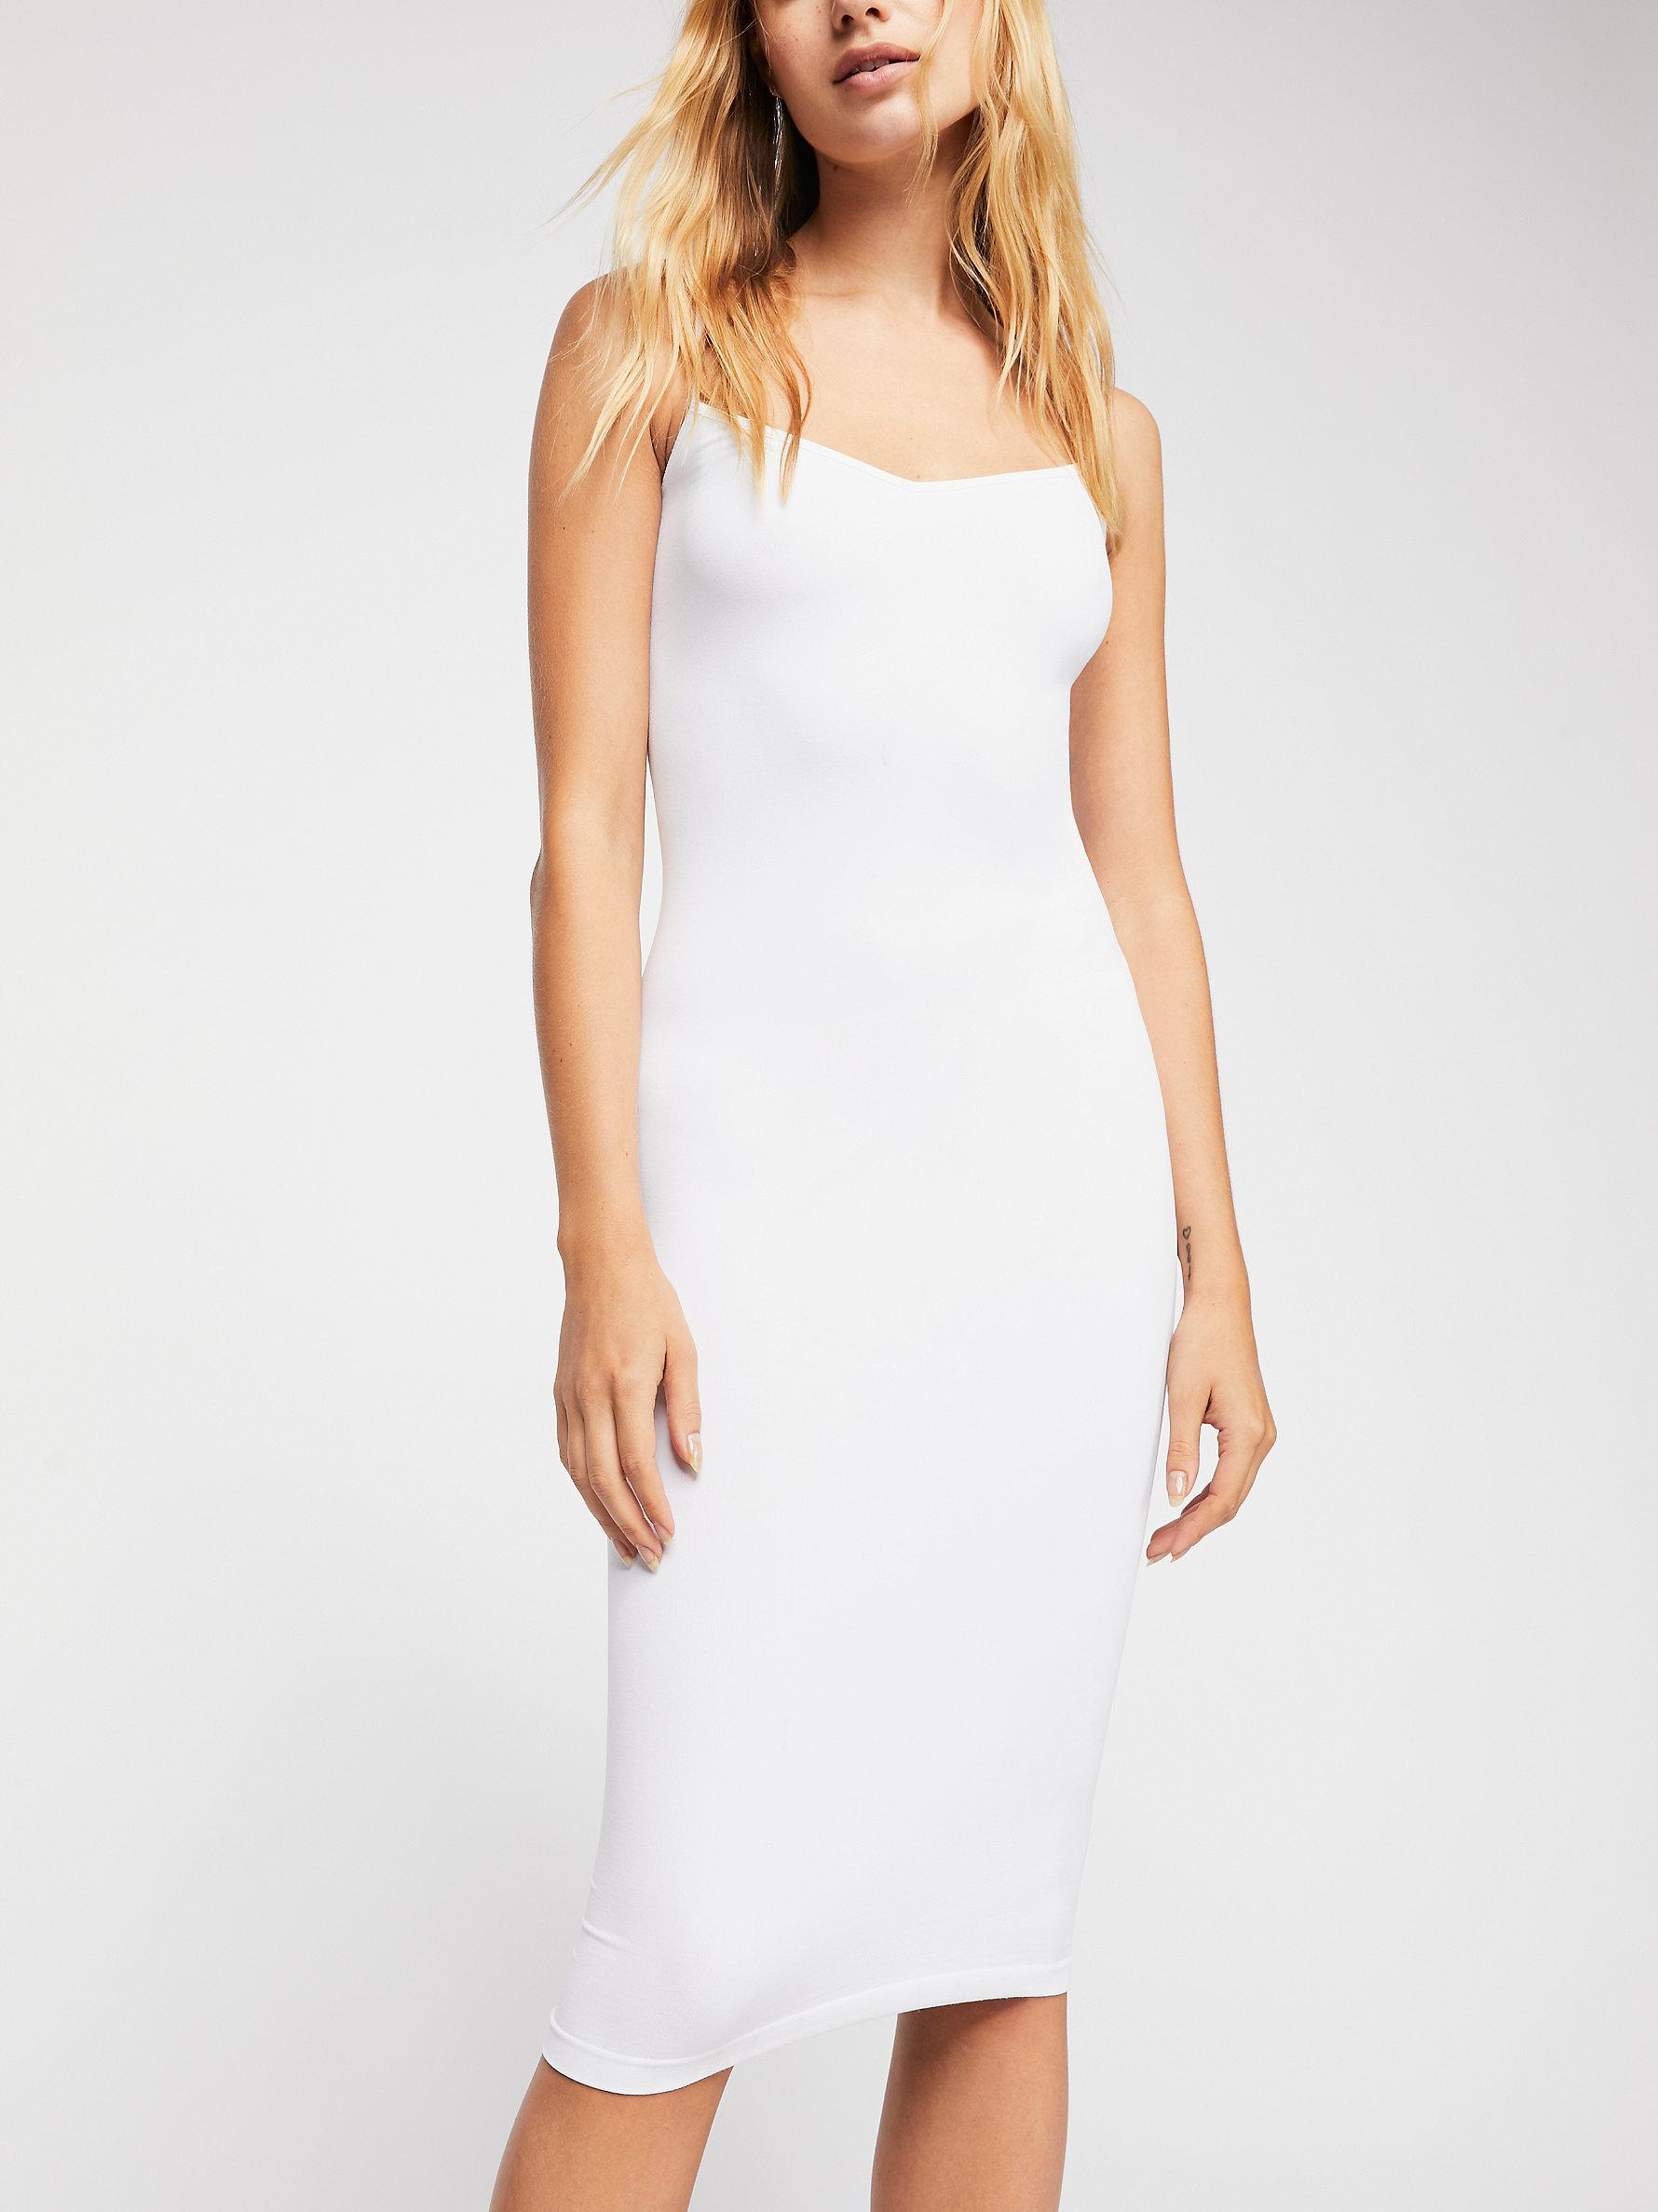 69e3e95d0eec Free People Tea Length Seamless Slip By Intimately in White - Lyst